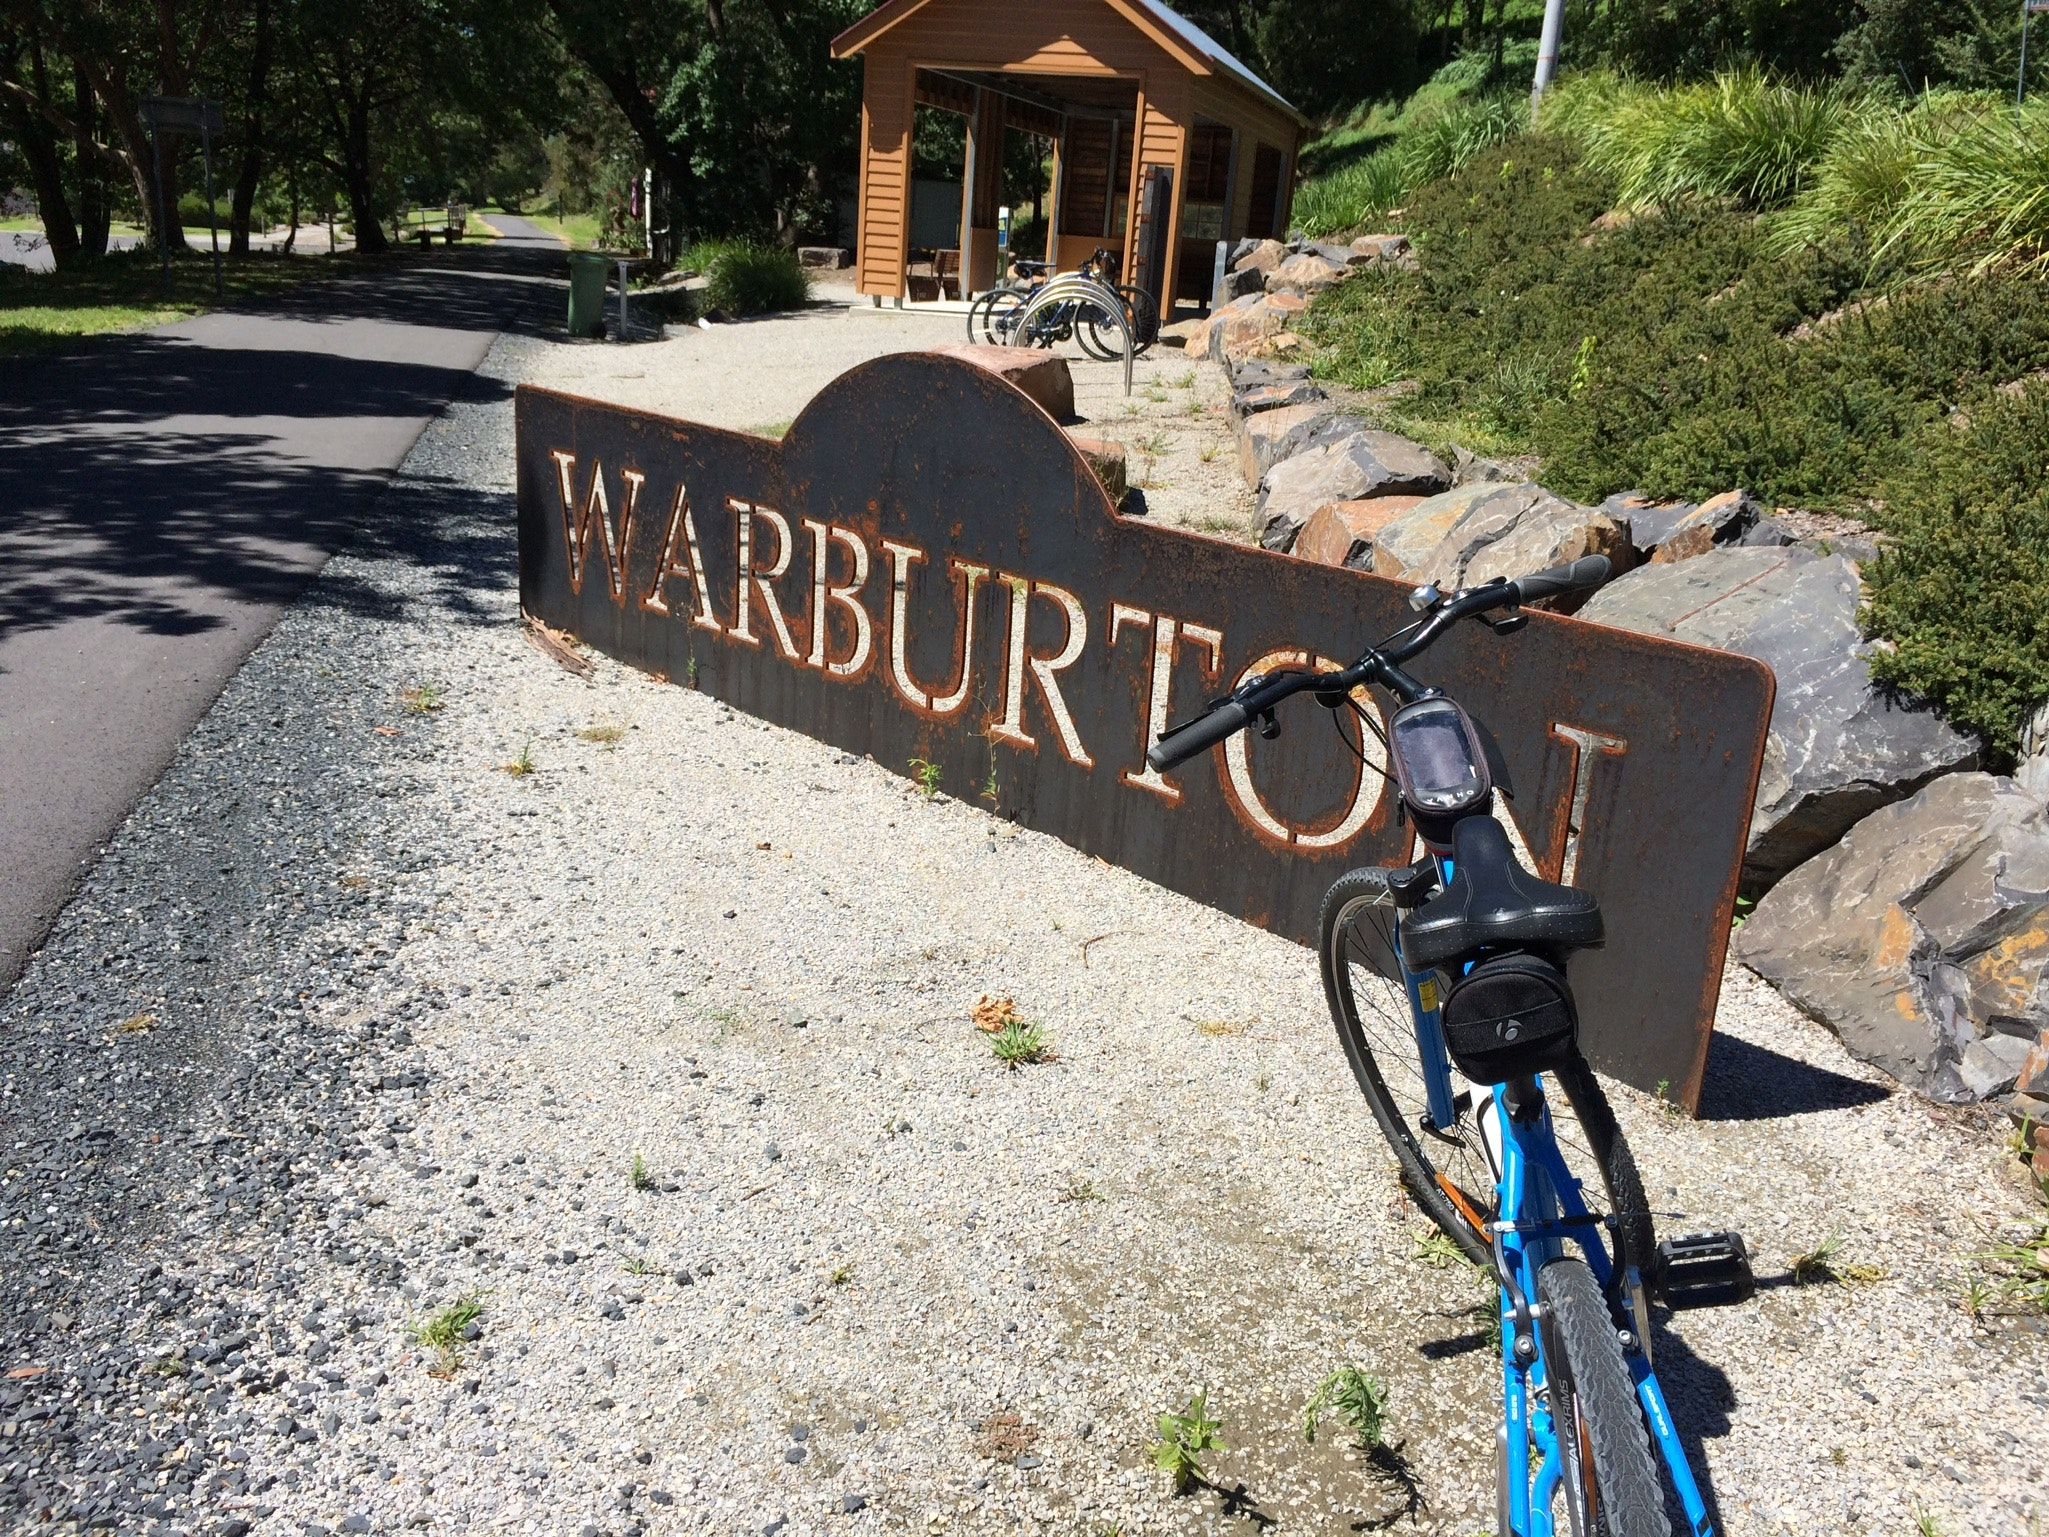 Entering Warburton